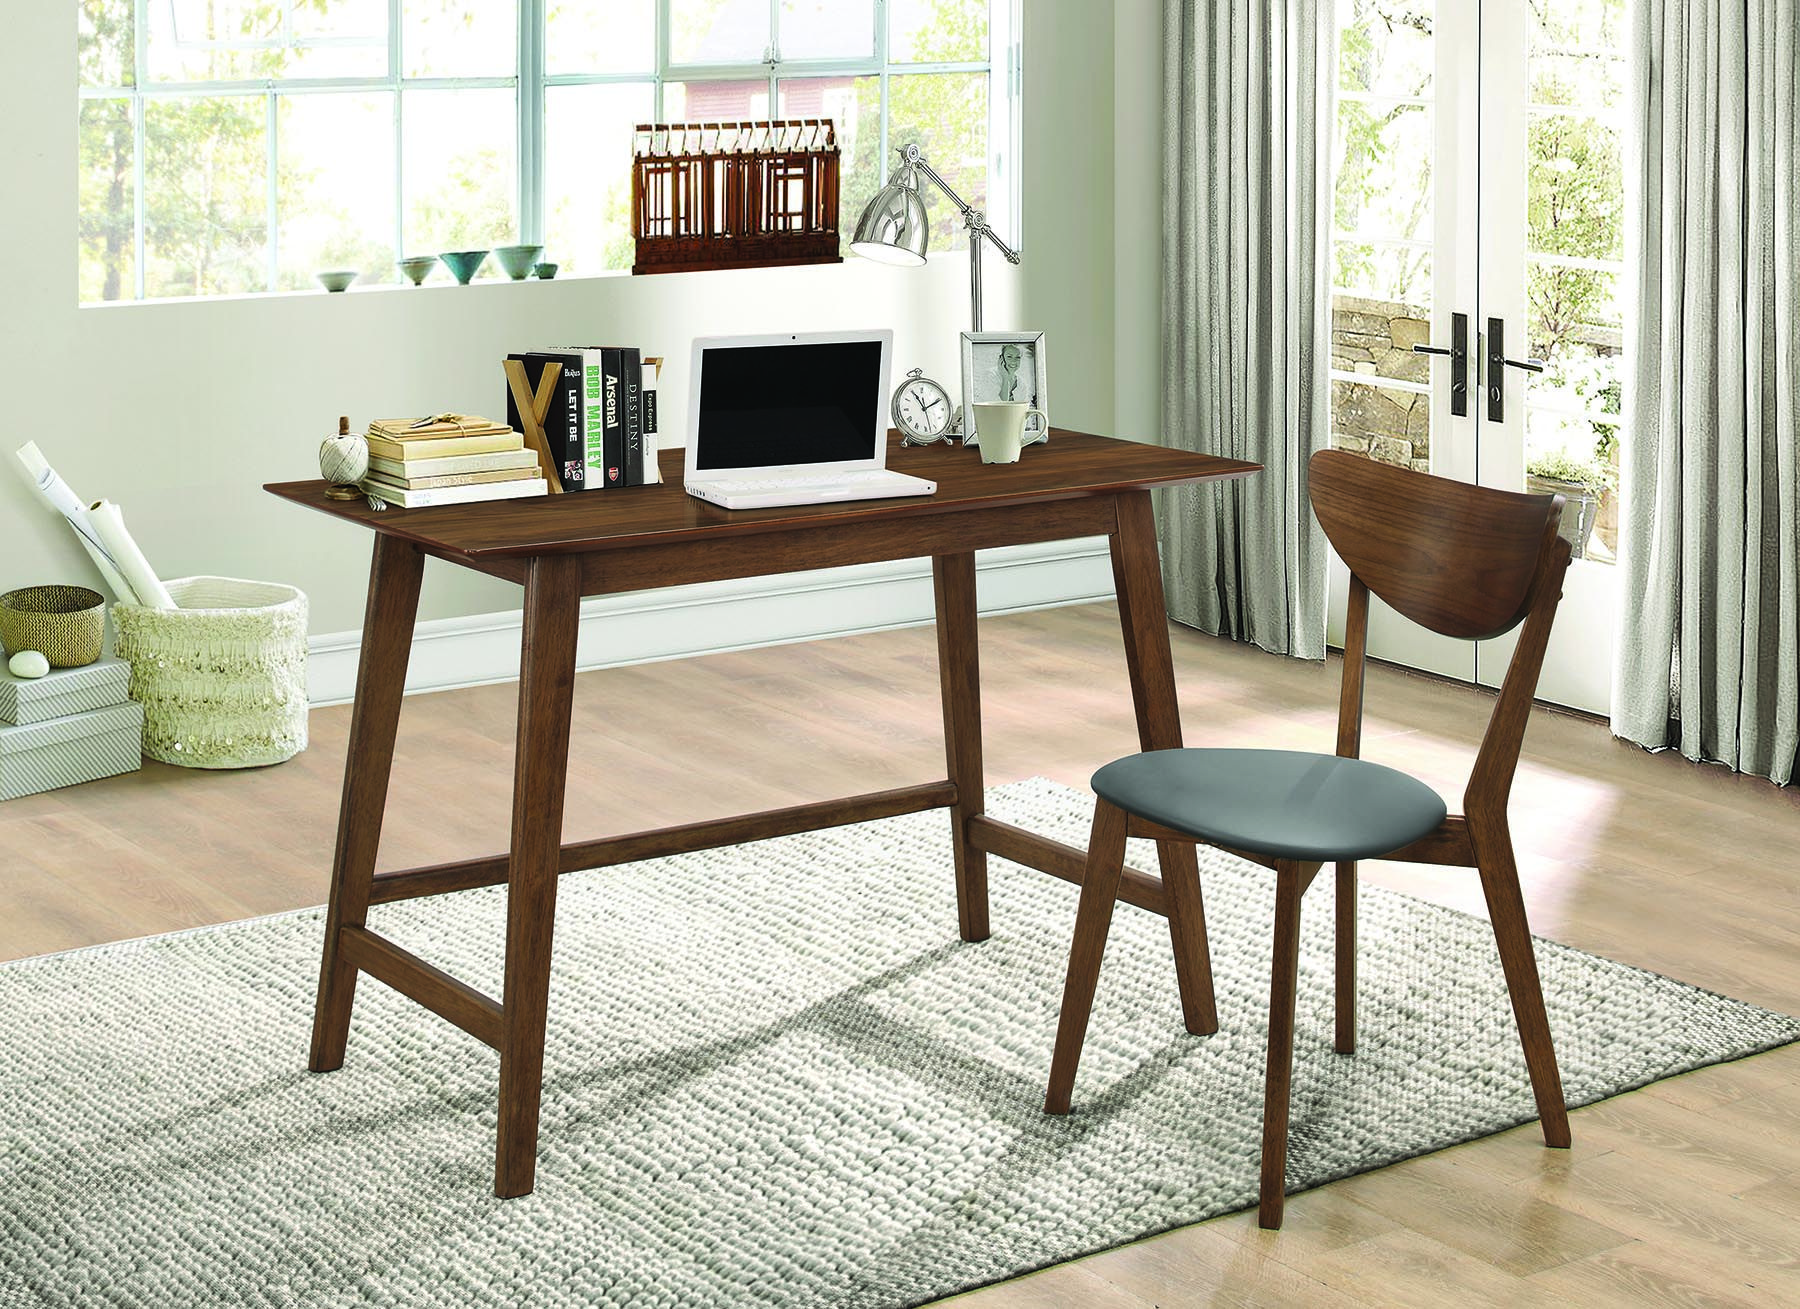 Camila Collection 801095 2 Piece Walnut Finish Desk And Chair Set  # Muebles Coaster